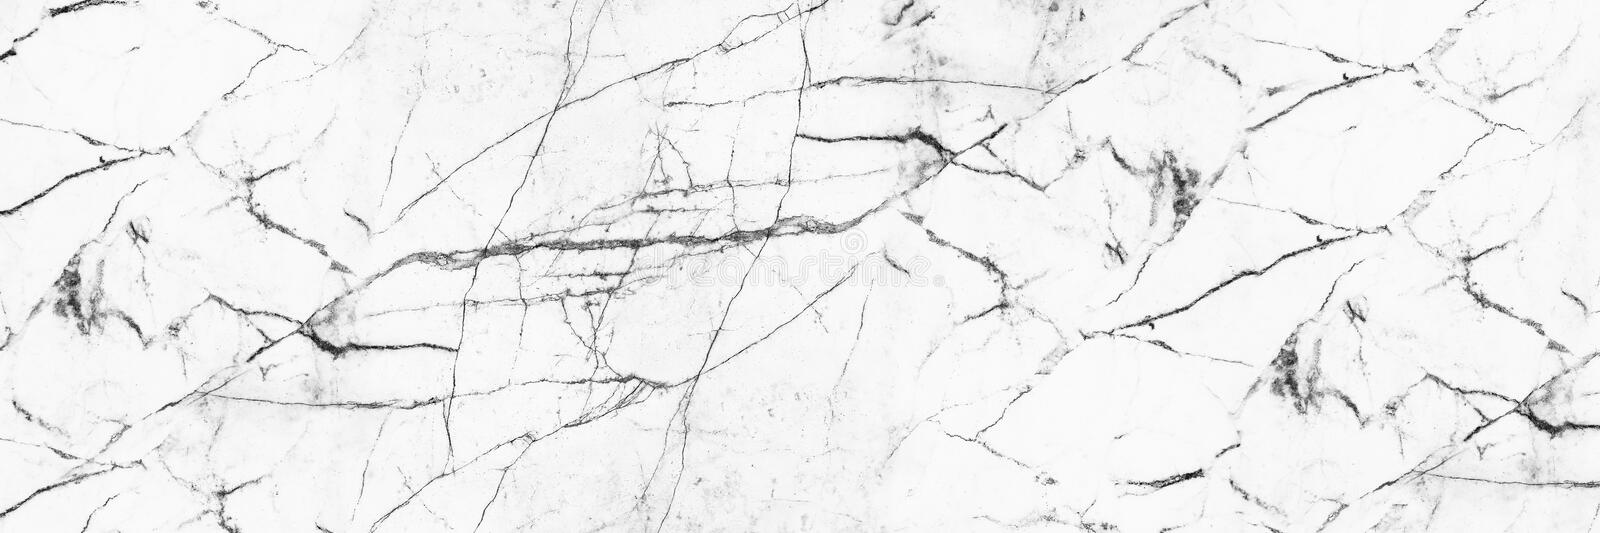 Horizontal elegant white marble texture for pattern and background.  stock photo